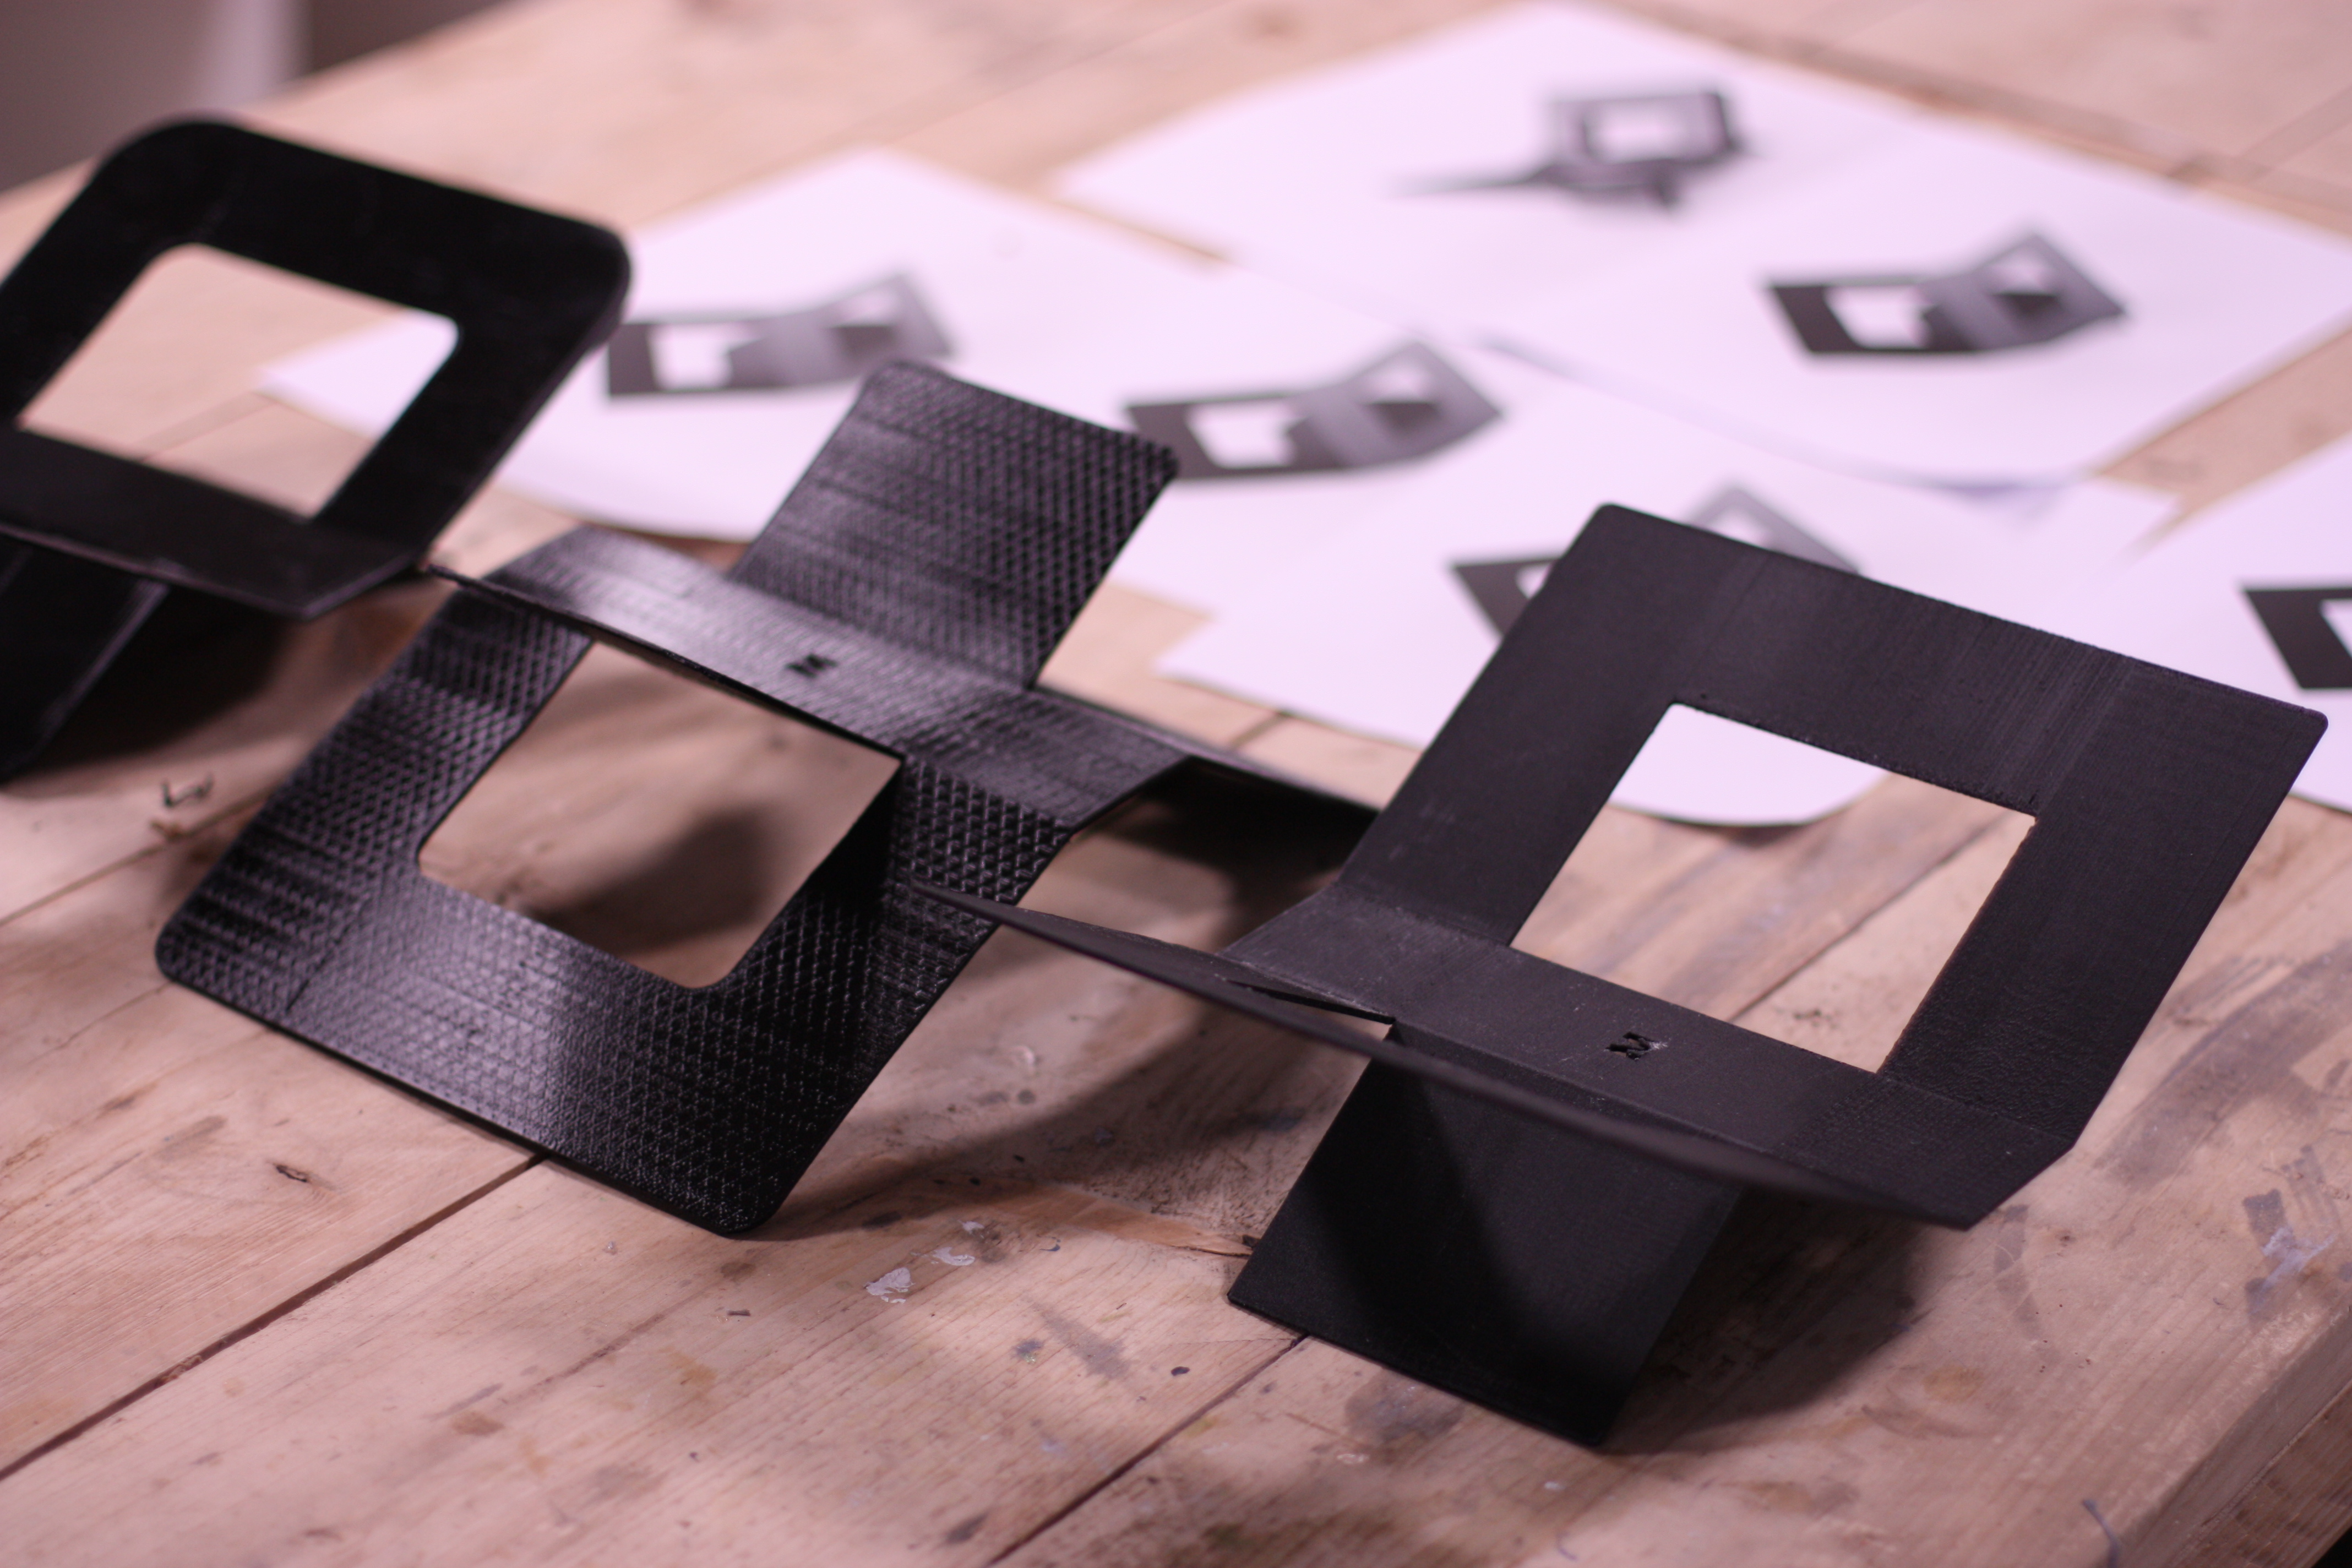 Rapid prototyping product design samples on a table.